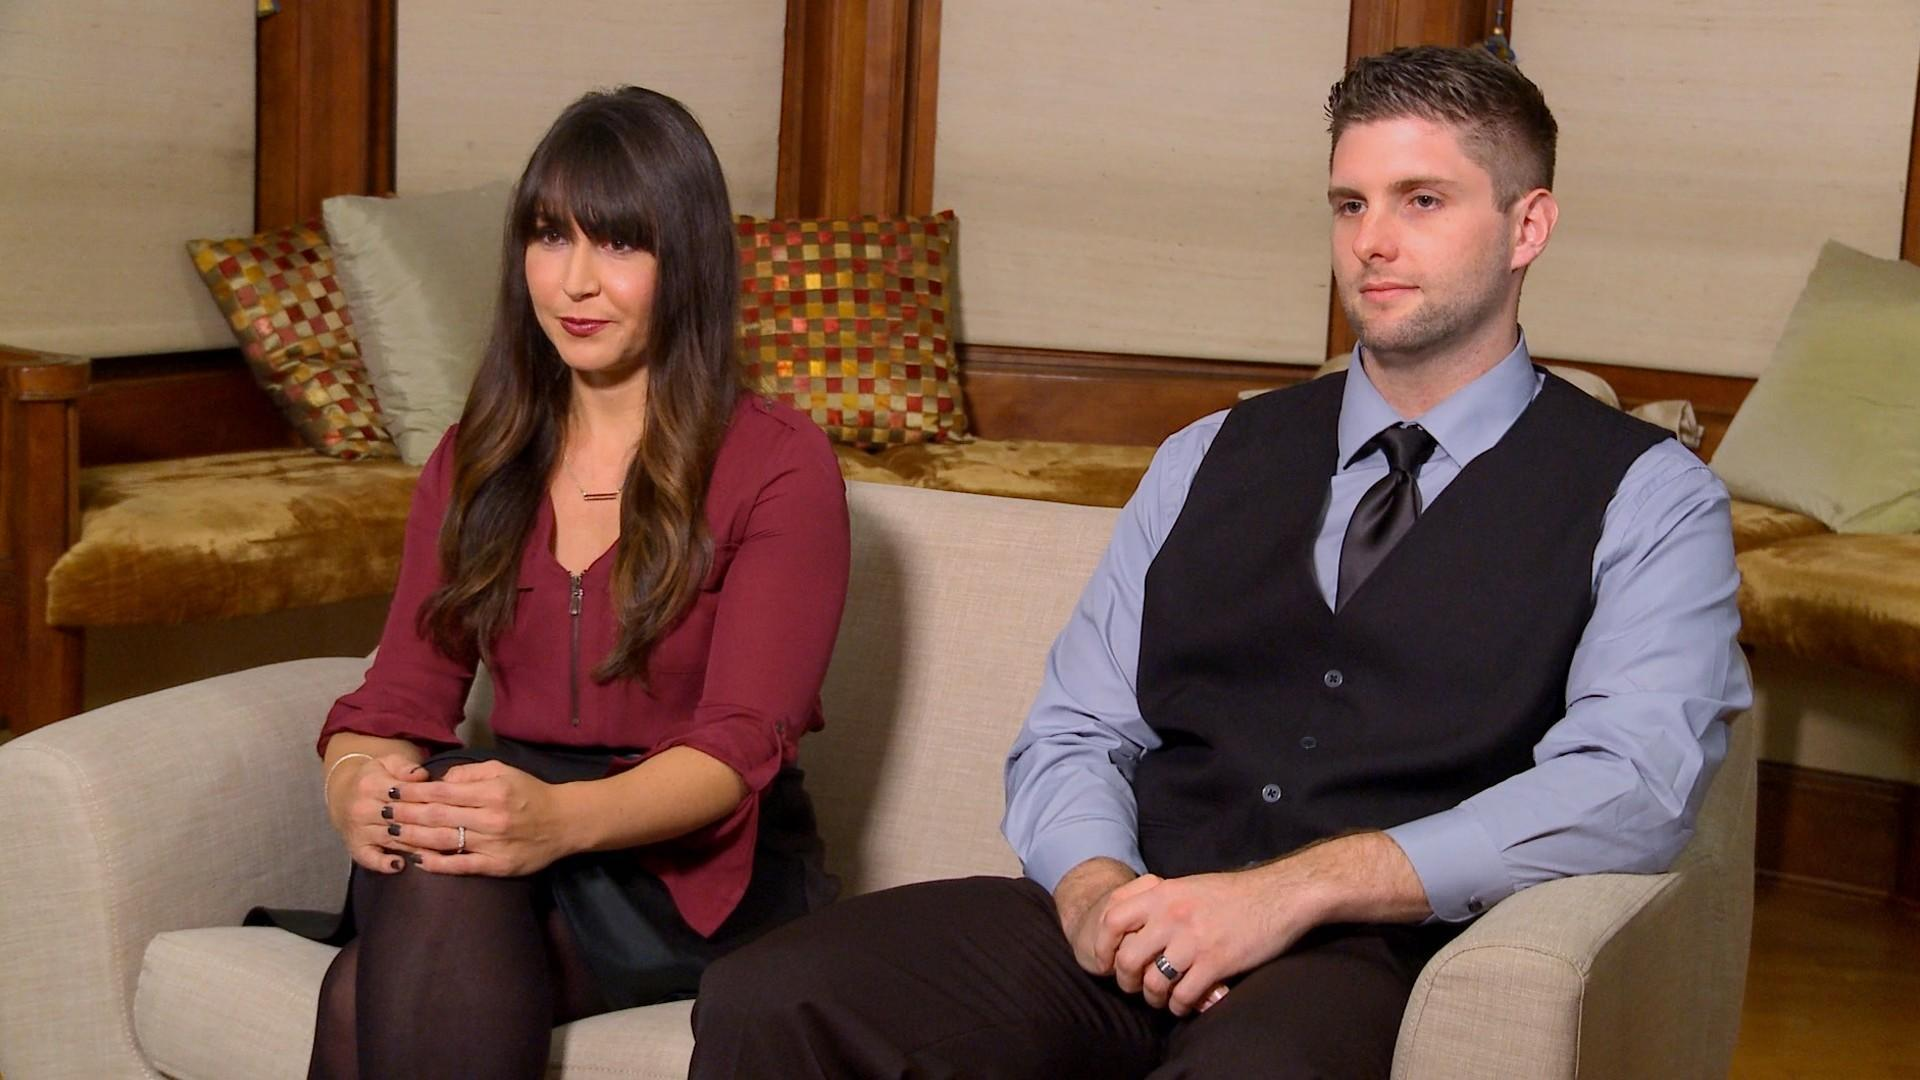 danielle-cody-married-at-first-sight-1531253013142-1531253015040.jpg